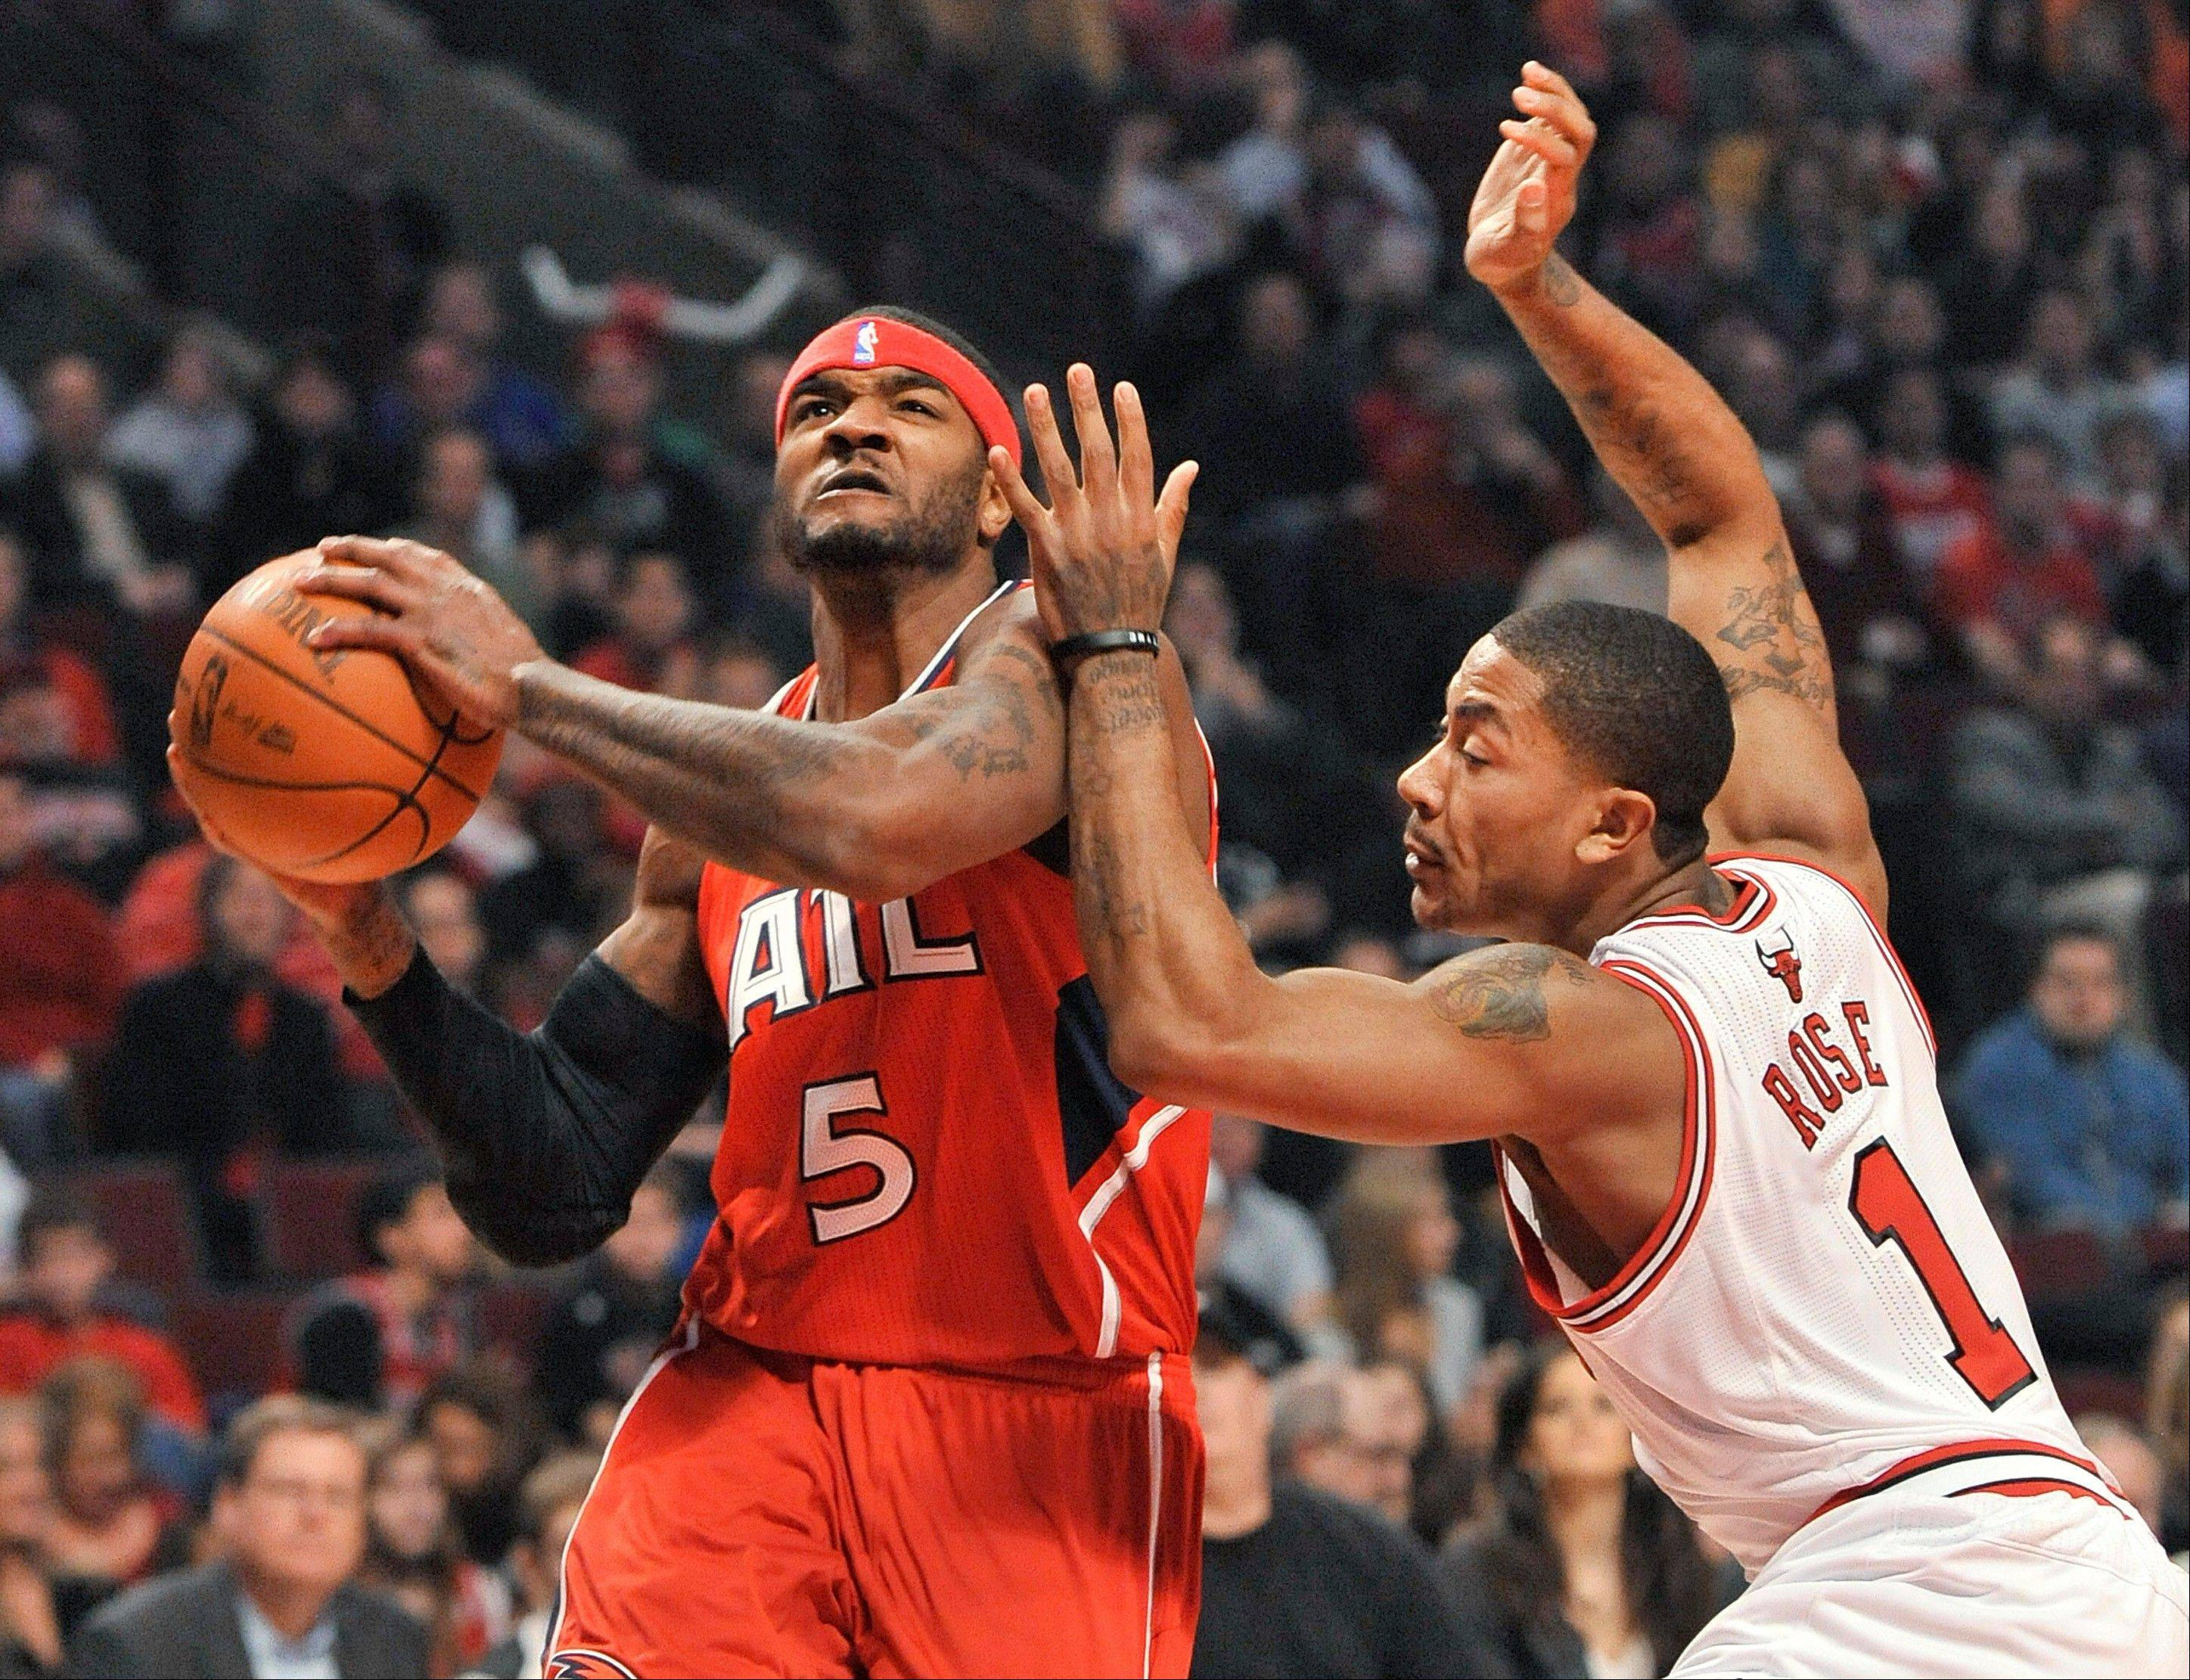 Derrick Rose, here defending Atlanta forward Josh Smith, says his back is feeling fine after his return to the floor Monday against the Hawks.